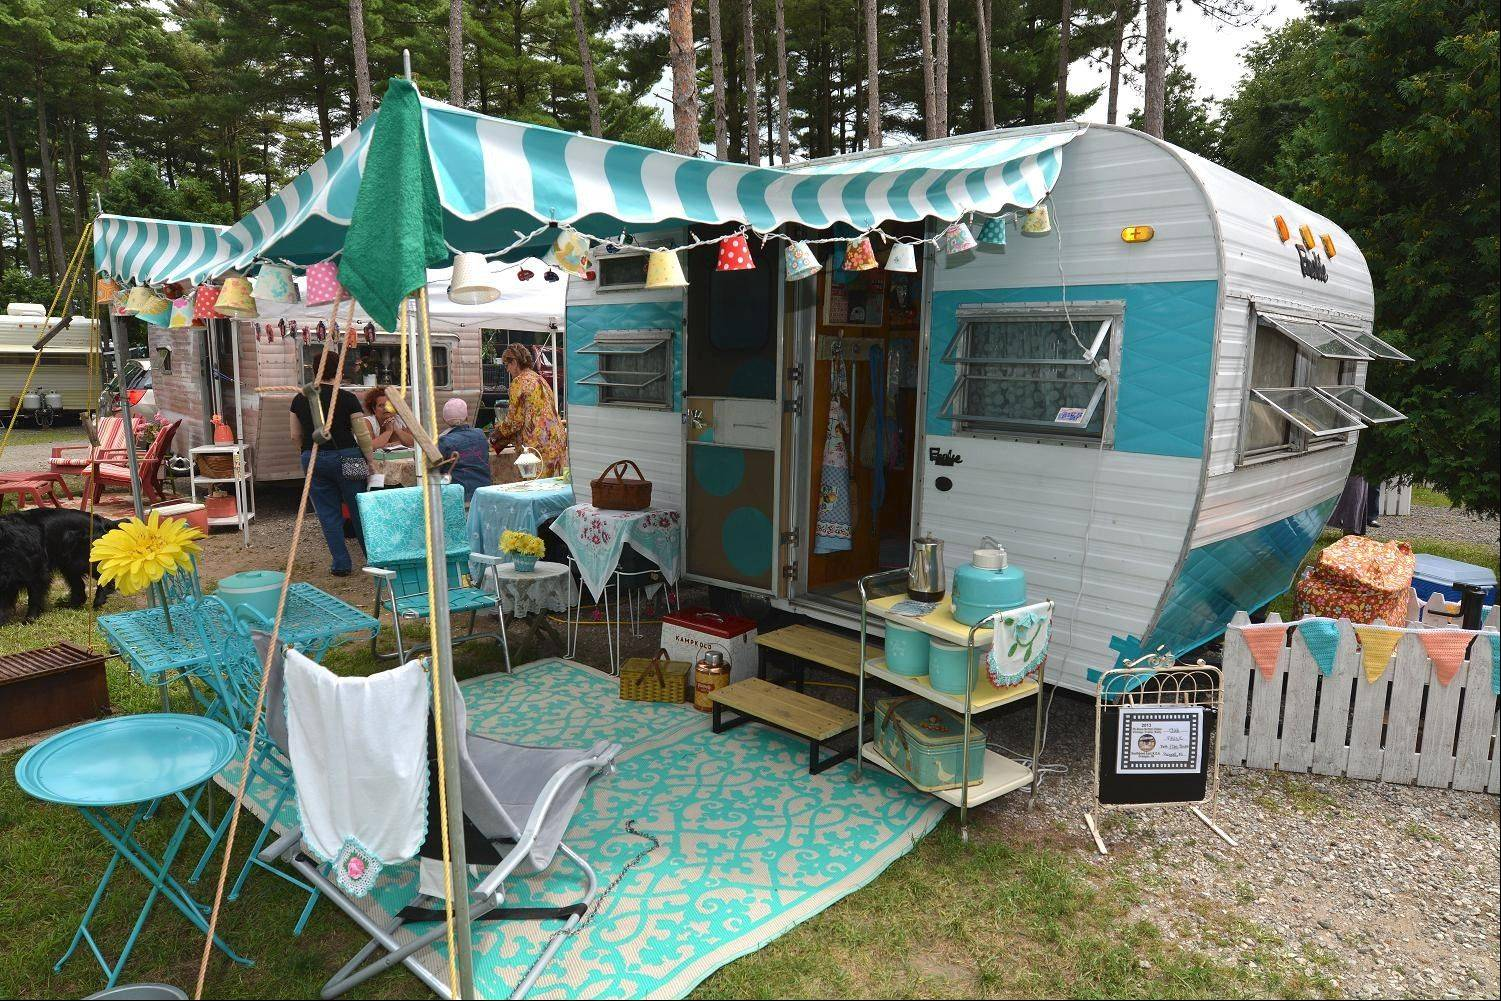 "Beth Brickler, of Plainwell, Mich., purchased this 1966 Frolic Standard trailer sight unseen. She then embarked on an 8-month restoration. ""I love the retro themes and the vintage aspect but more than anything, the friendships!"""